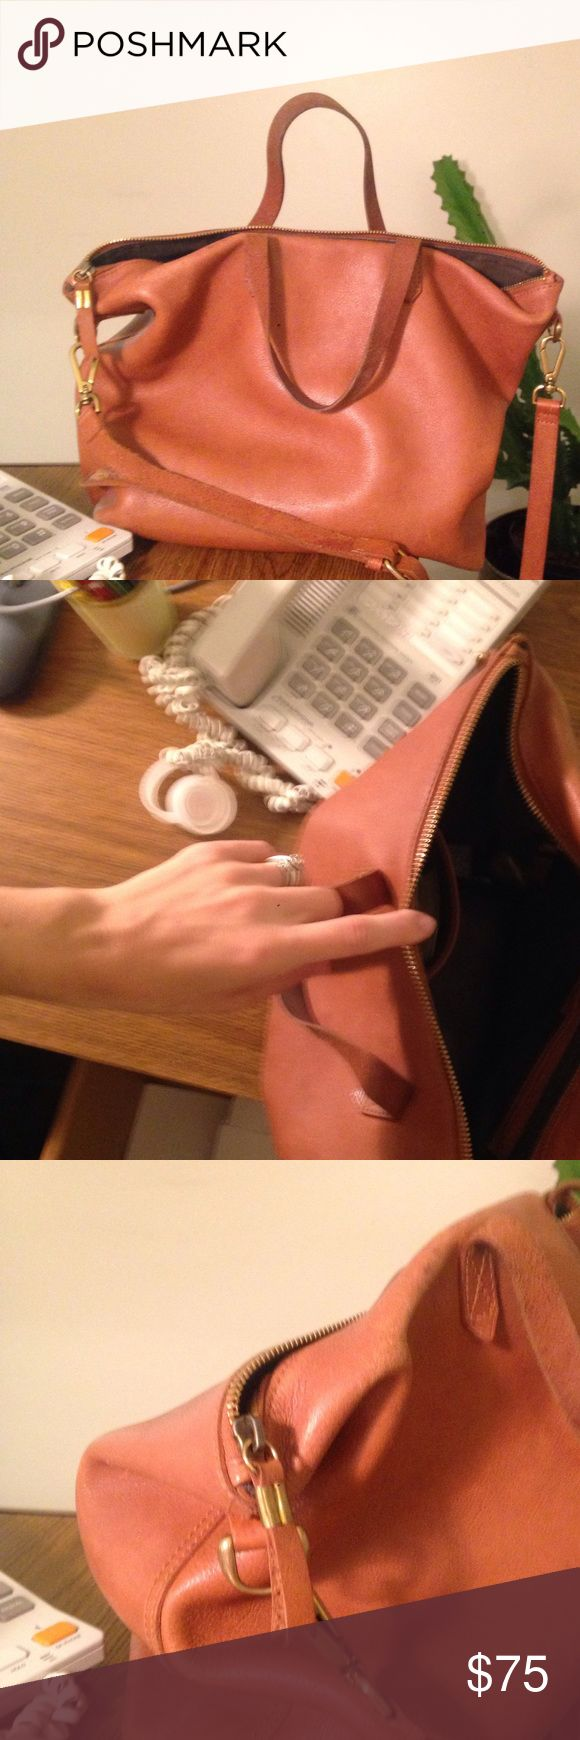 Transport zip tote light brown Well love but still in good shape. No holes. Light water stain, very faint Madewell Bags